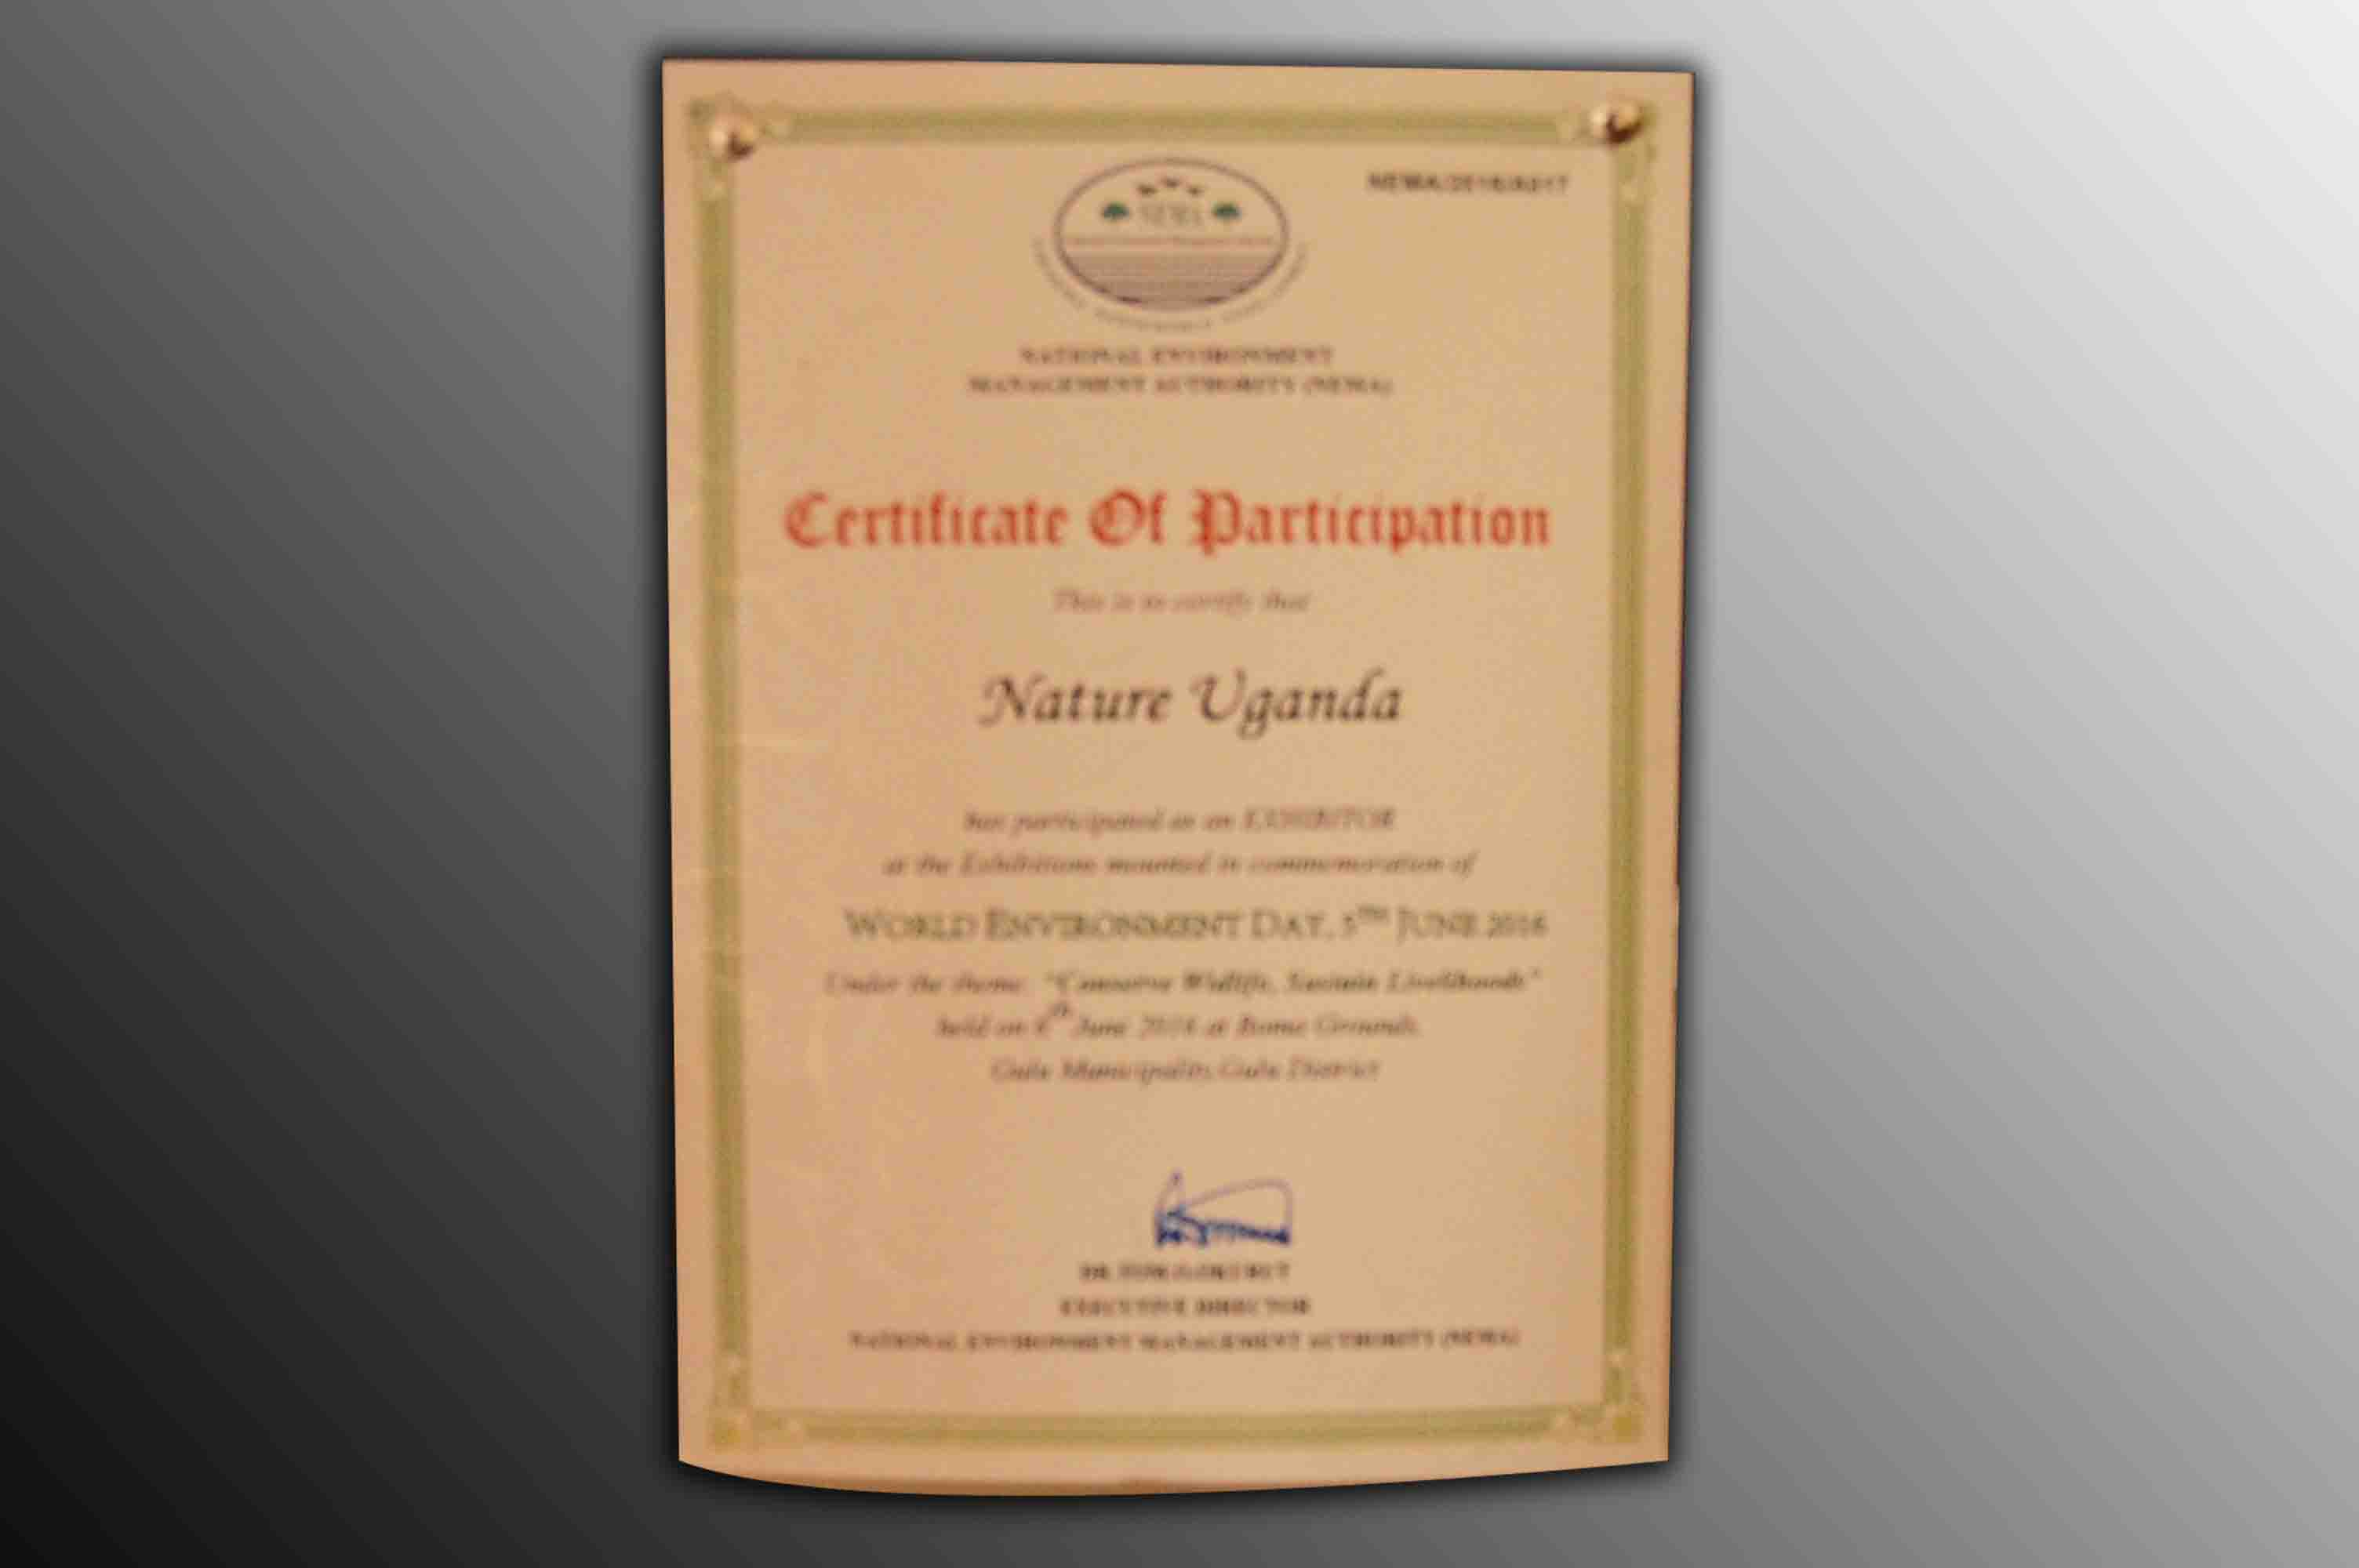 Certificate of Participation World Environment Day